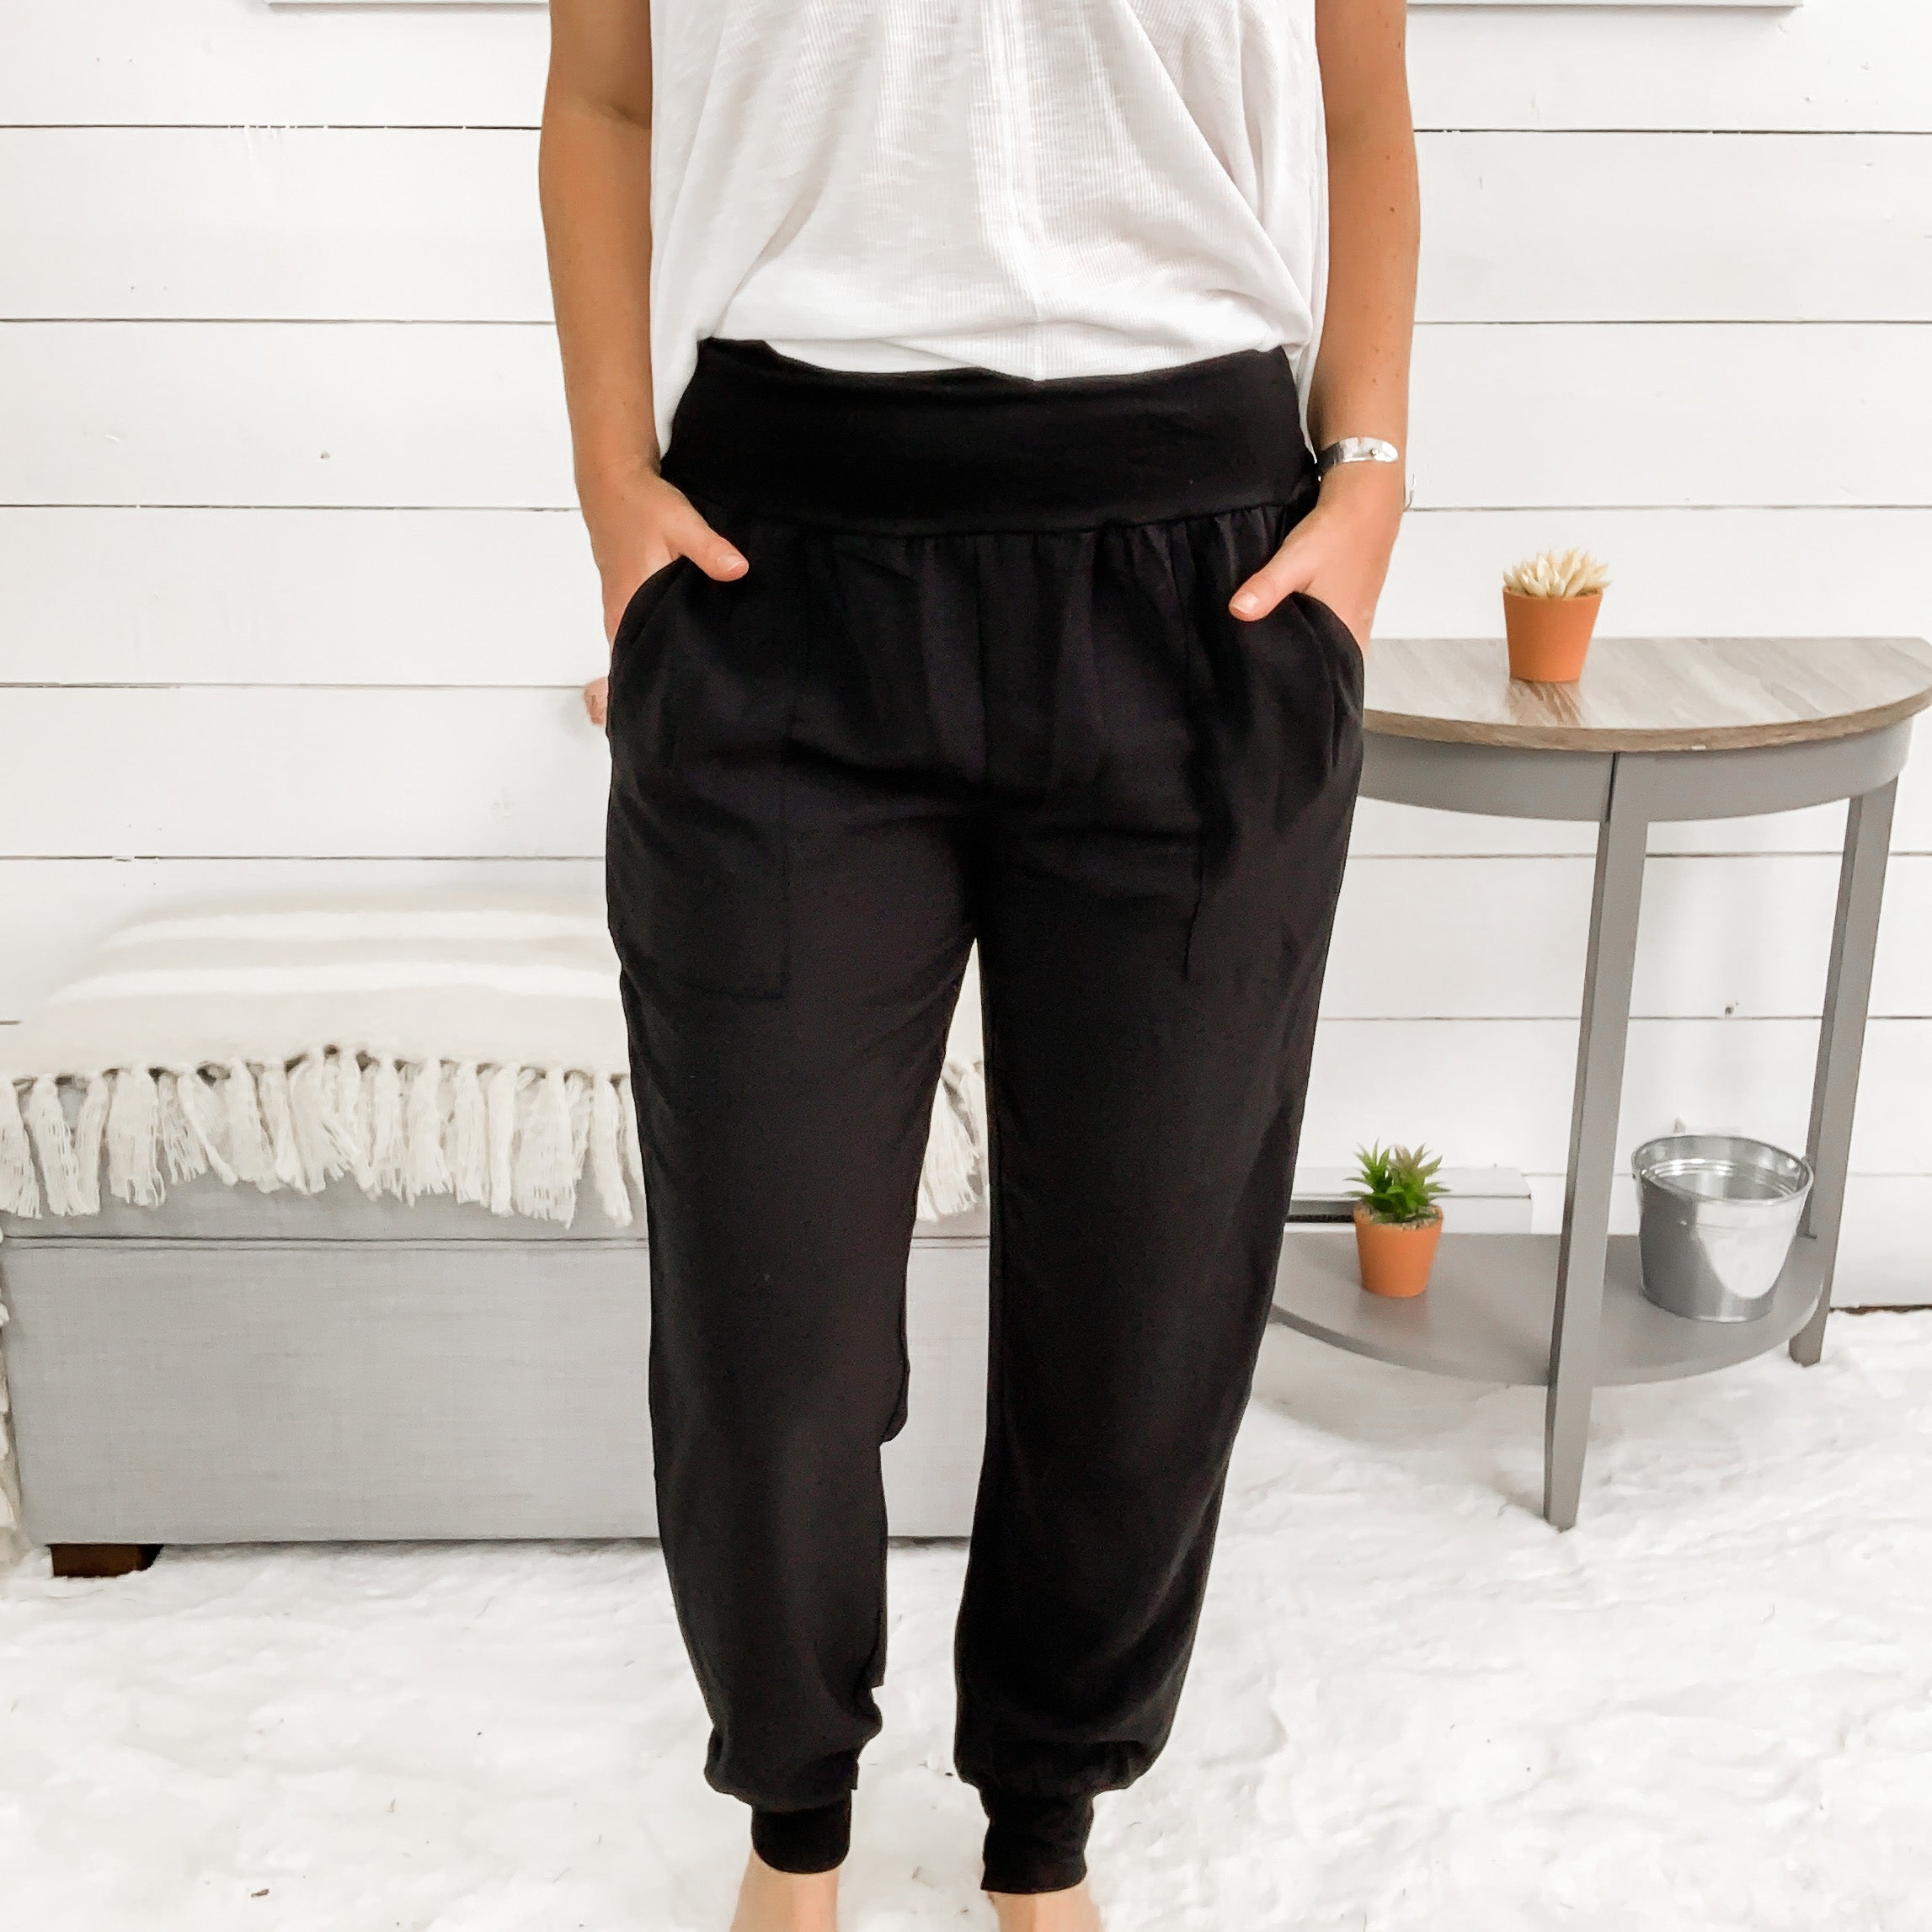 Stretchy, High Waisted Harem Style Pants